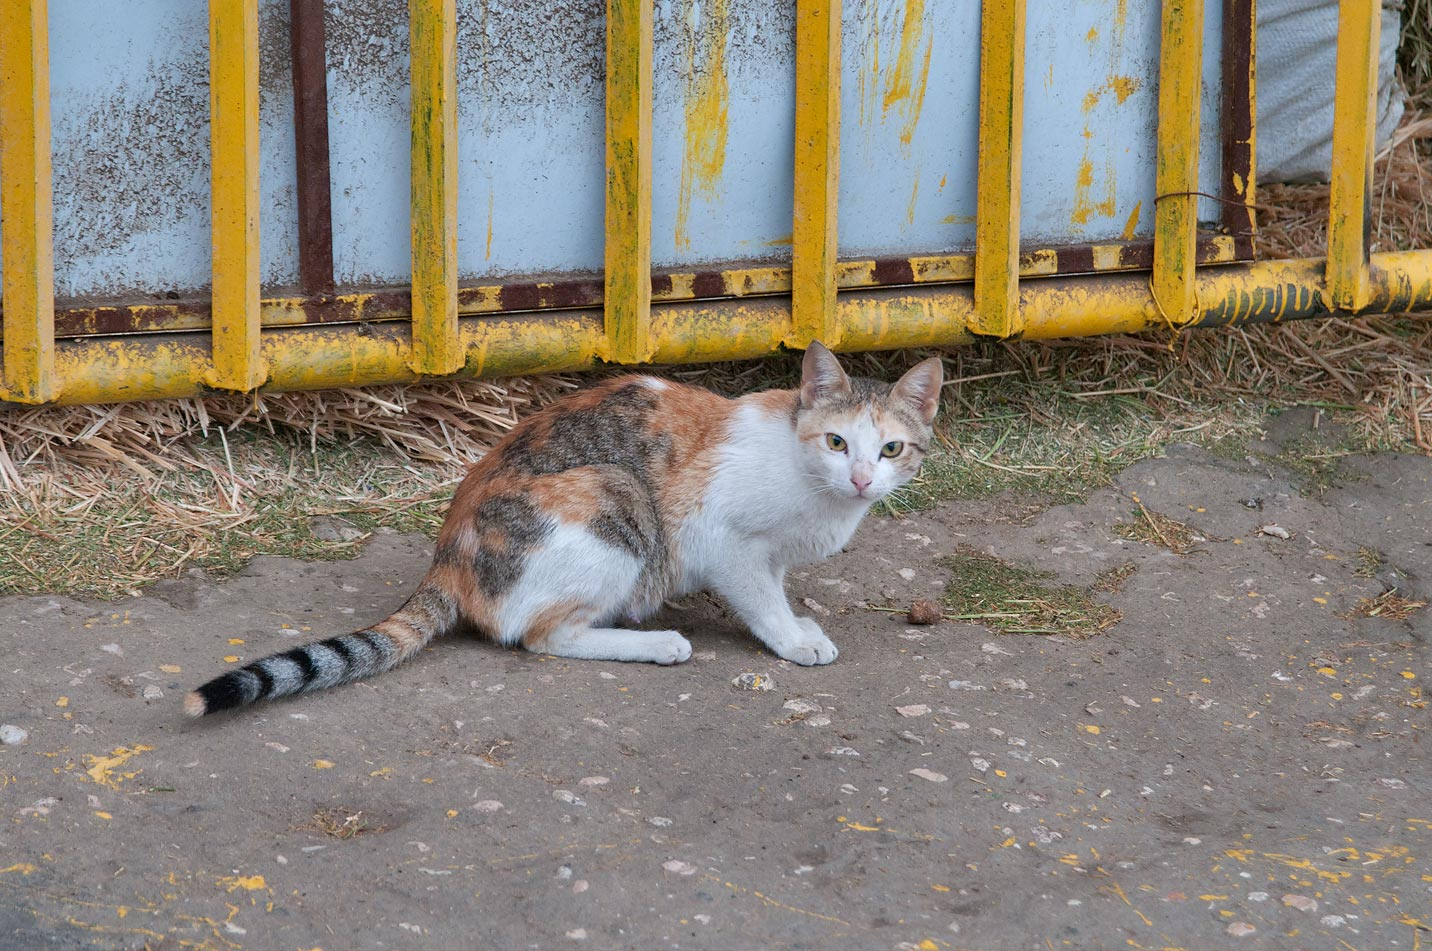 A cat guarding fodder in Animal Market, Wholesale Markets area. Doha, Qatar